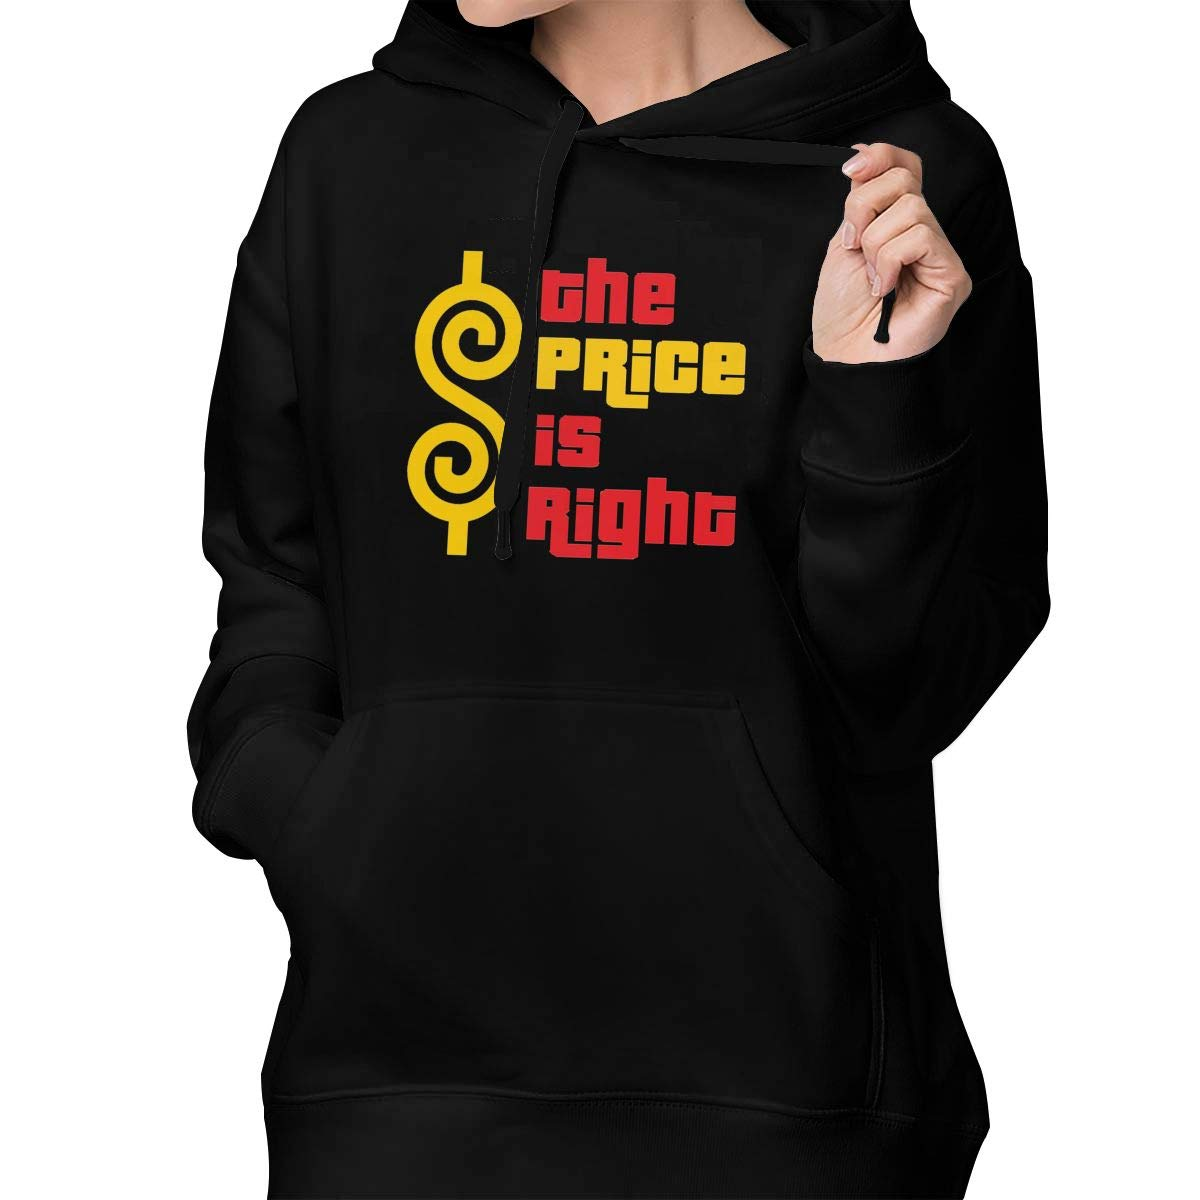 Womens Pullover Hoodie The Price is Right Shirts Shirt Hooded Sweatshirt Hoodies for Women Girls Clothes Outdoor Tops Black S